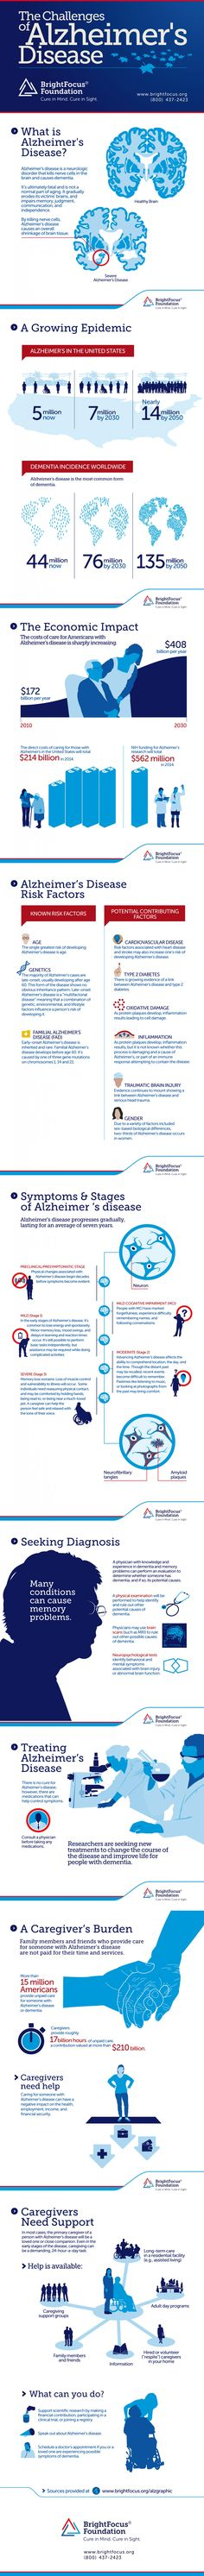 The Challenges of Alzheimer's Disease Infographic